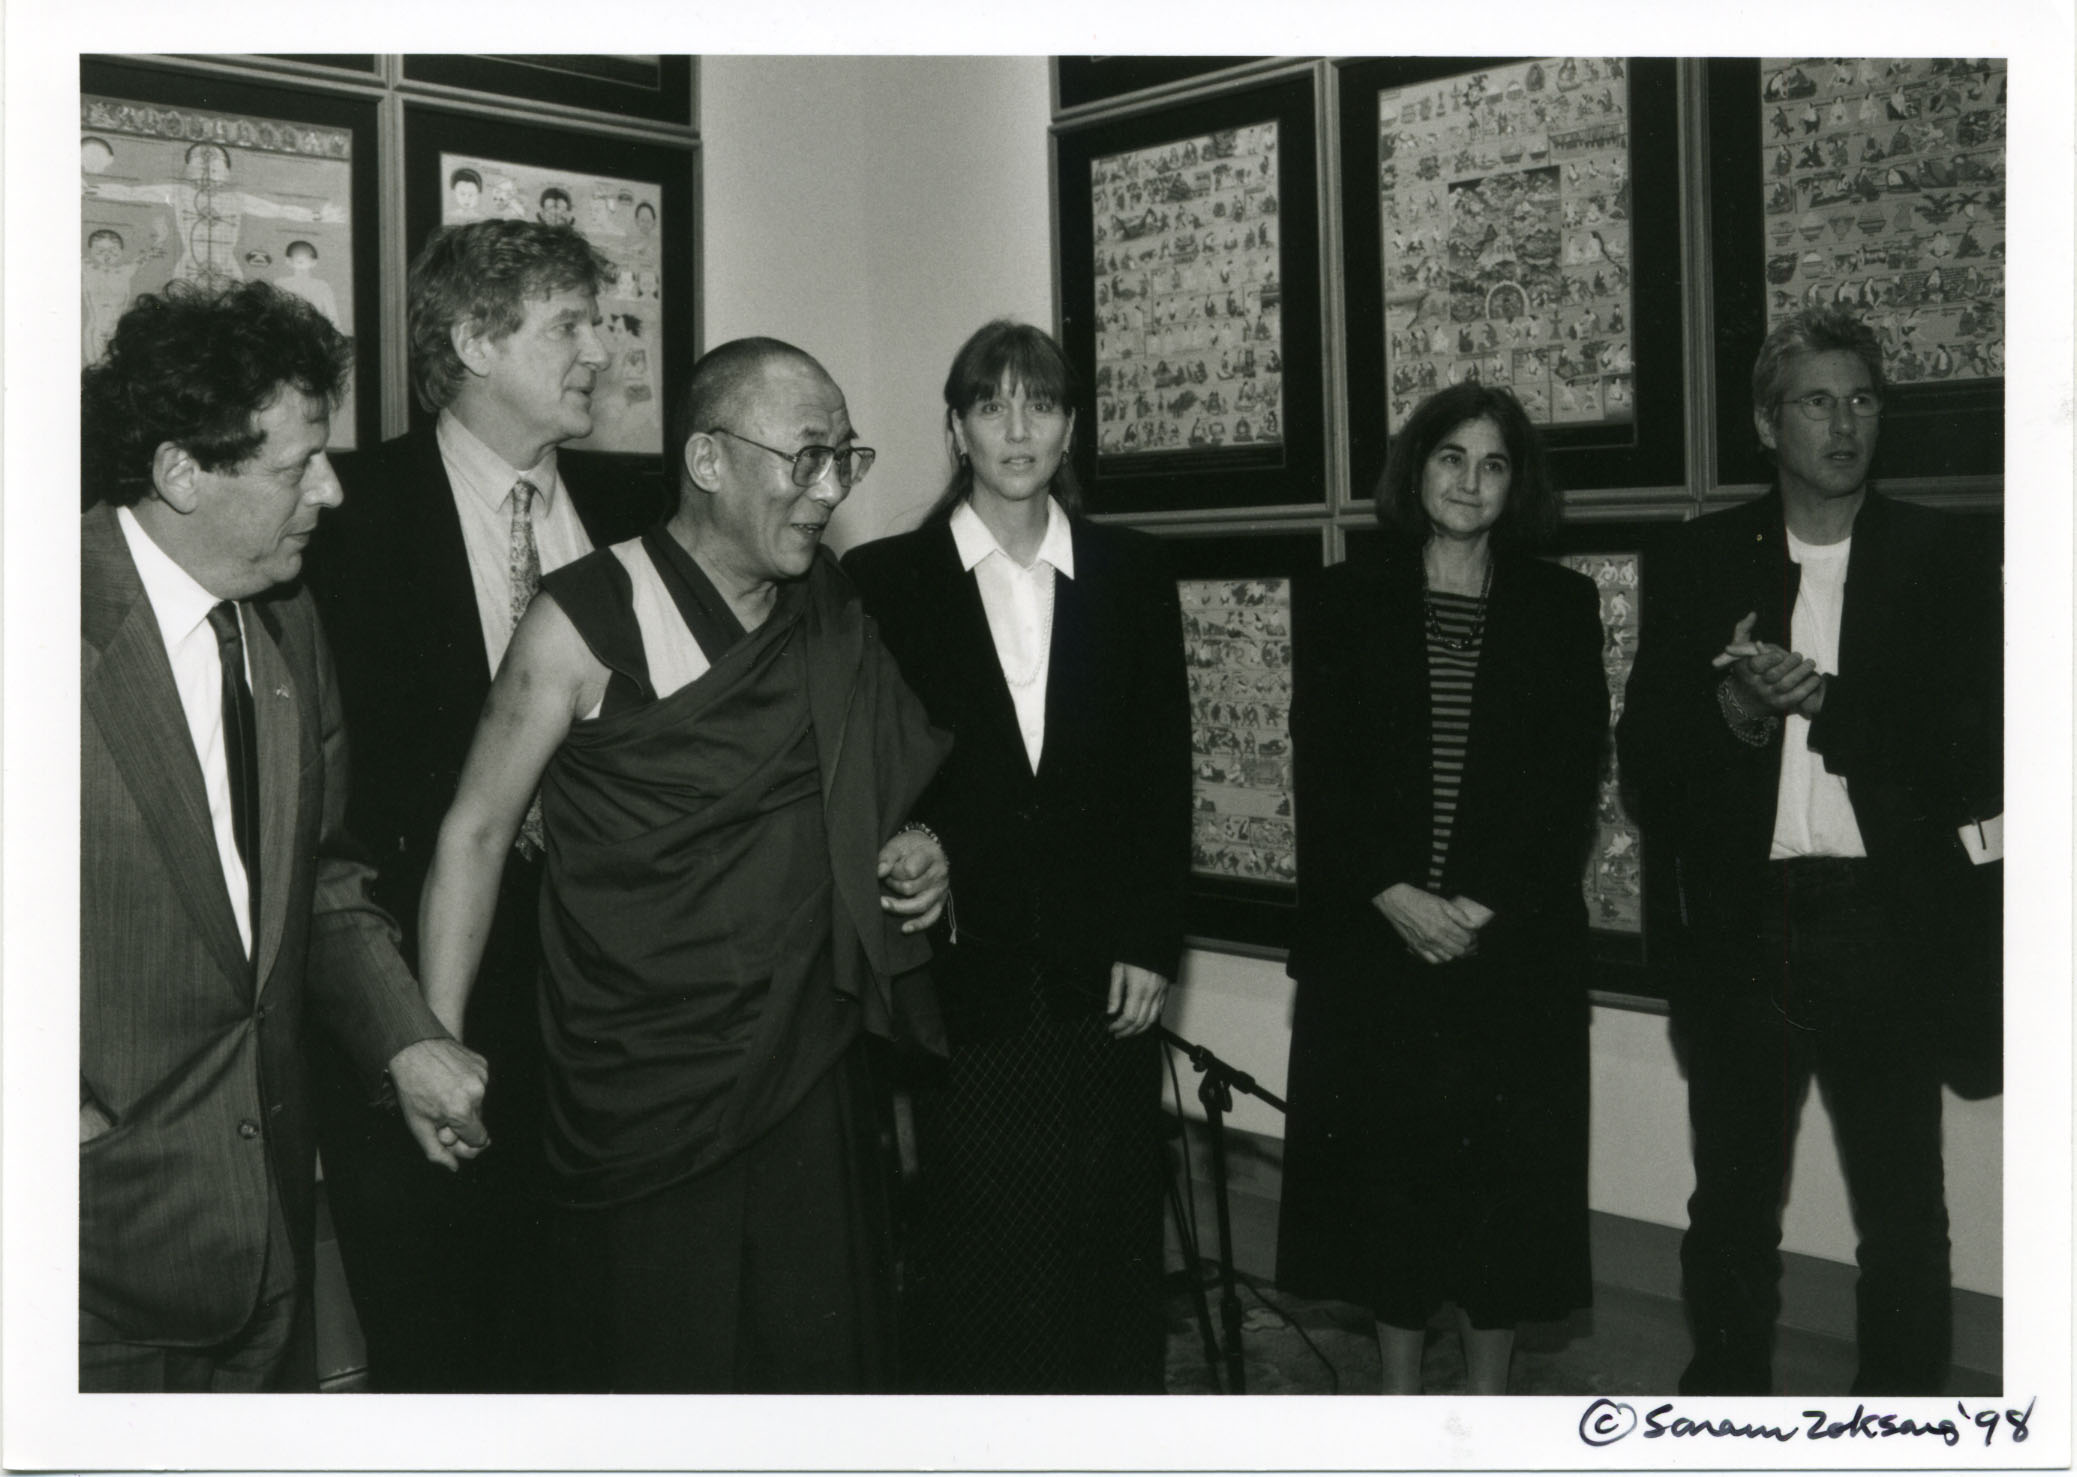 With Philip Glass, H.H. the Dalai Lama, Elizabeth Avedon and Richard Gere at the inauguration of the Tibet House US in NYC in 1998